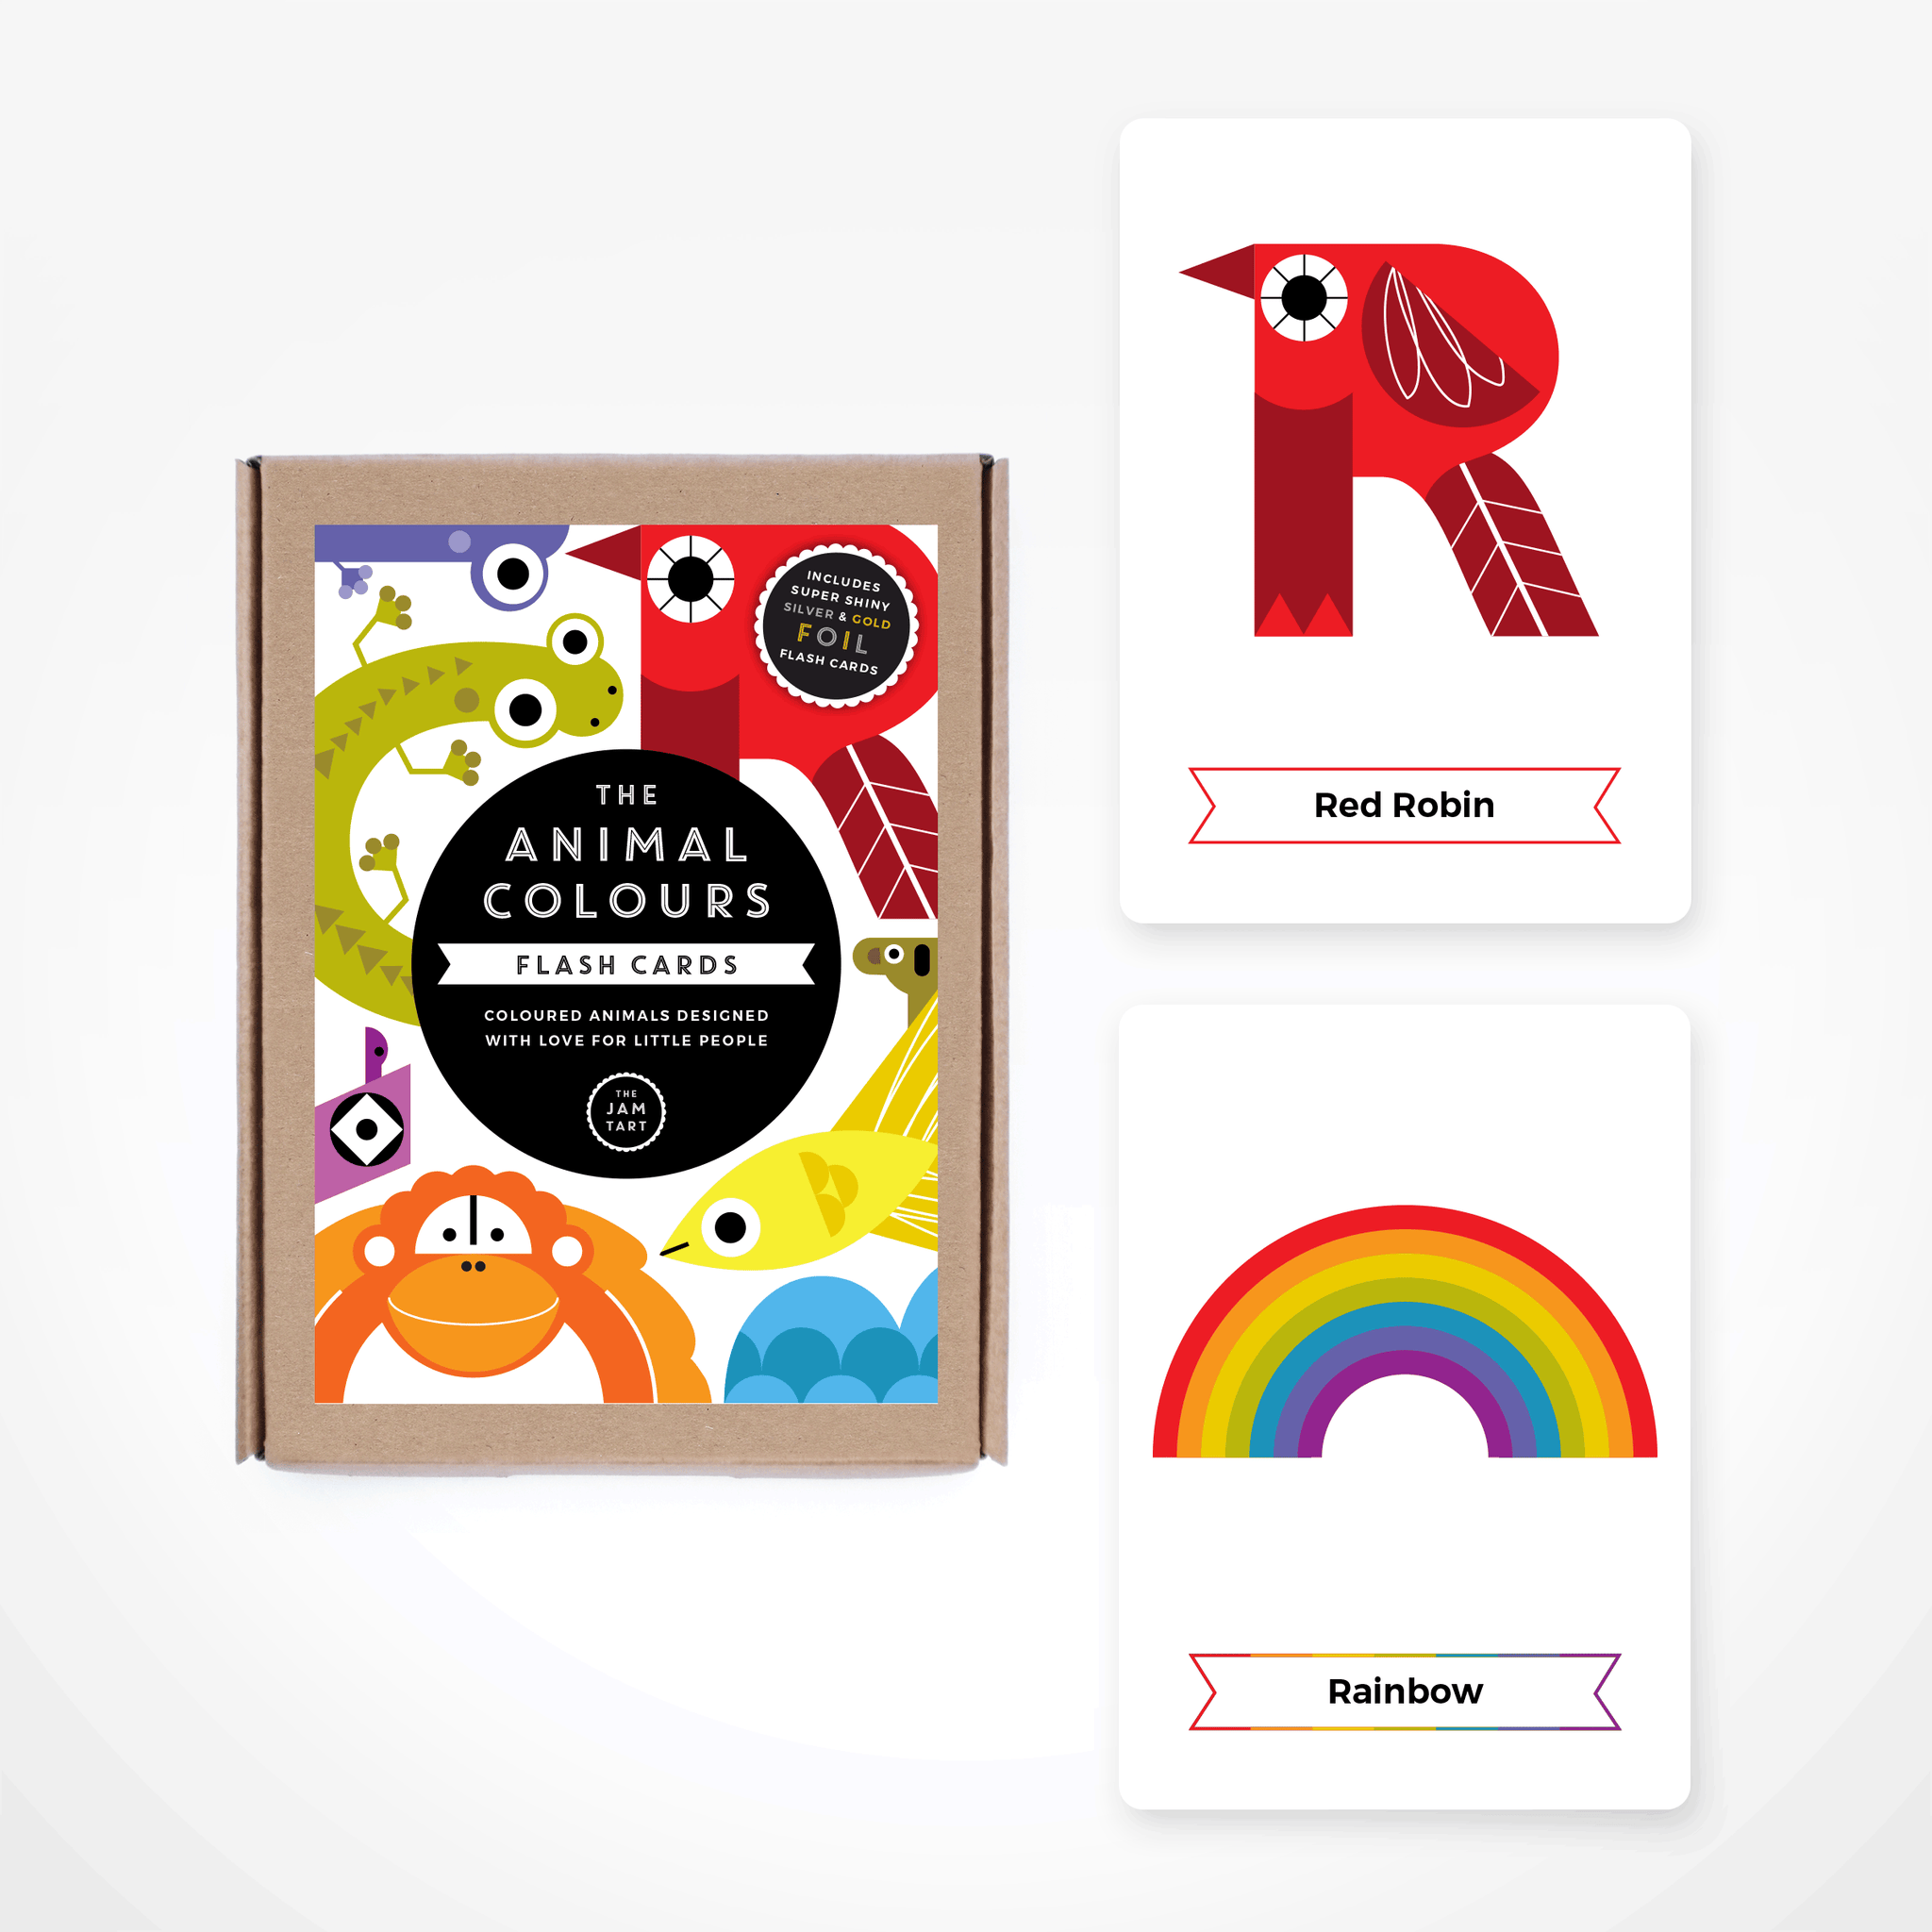 Animal Colours Flash Cards - The Jam Tart - how-i-wonder